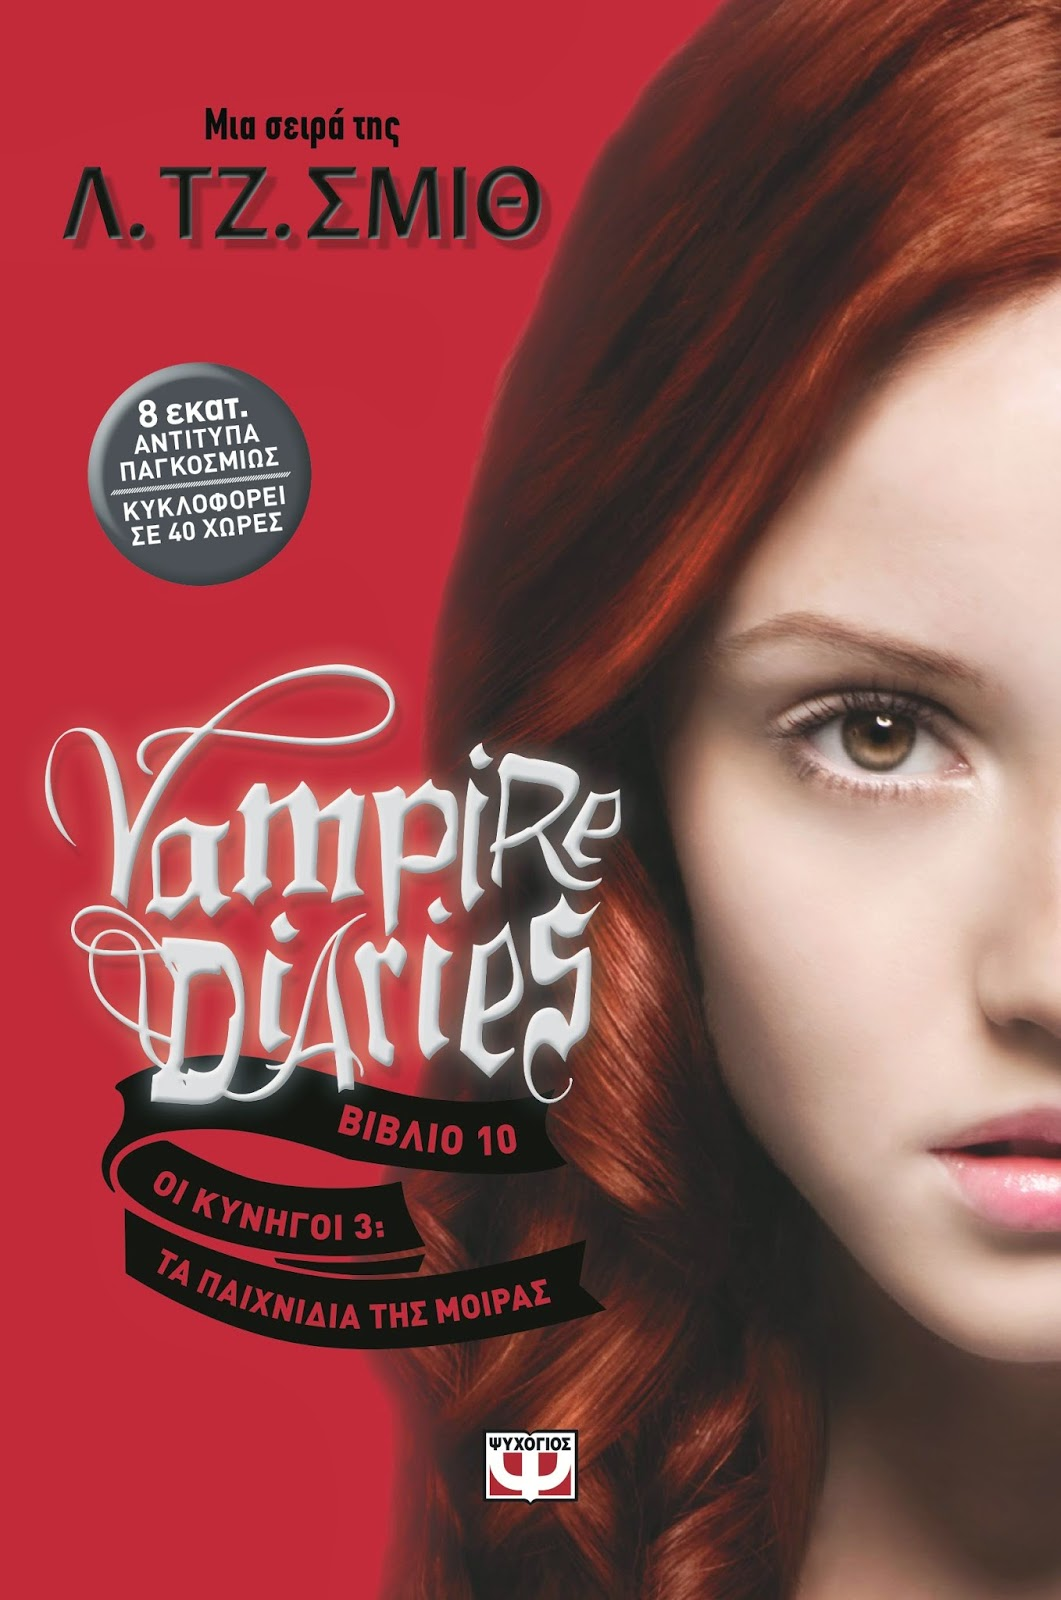 http://www.culture21century.gr/2015/03/vampire-diaries-10-3-lj-smith-book.html